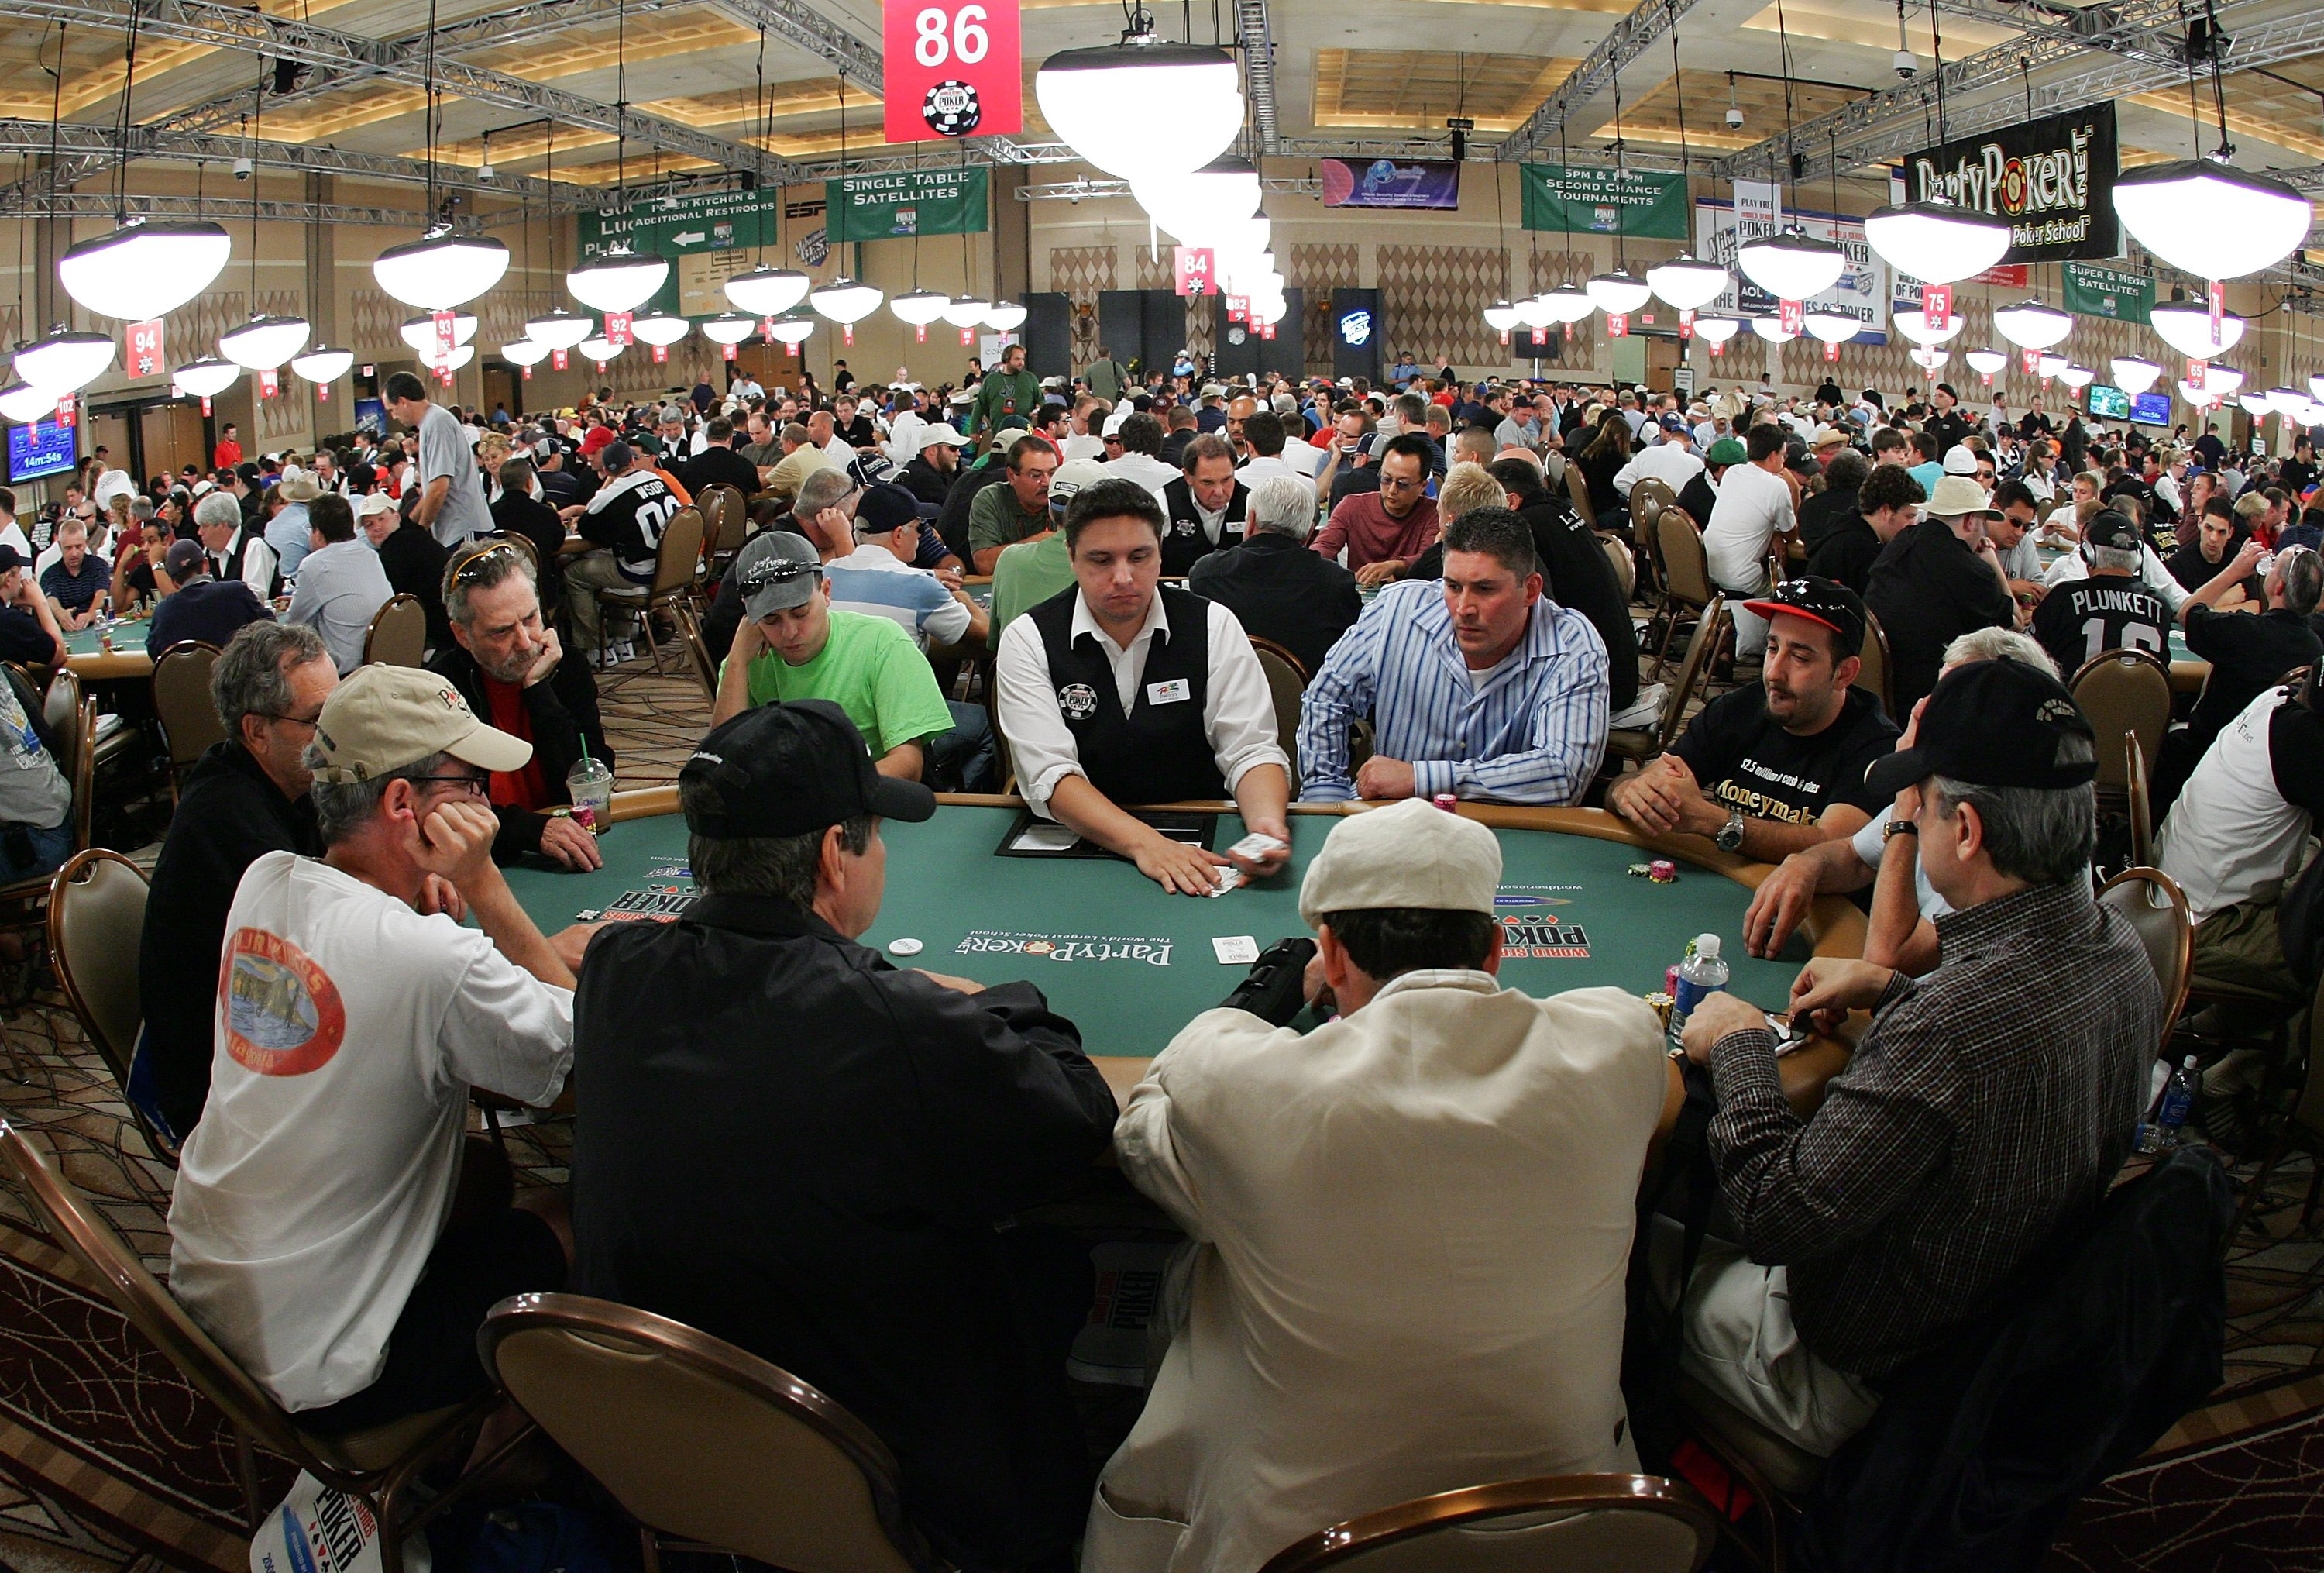 LAS VEGAS - JULY 30:  Players compete on the third day of the first round of the World Series of Poker no-limit Texas Hold 'em main event at the Rio Hotel & Casino July 30, 2006 in Las Vegas, Nevada. More than 8,600 players have registered to play in the